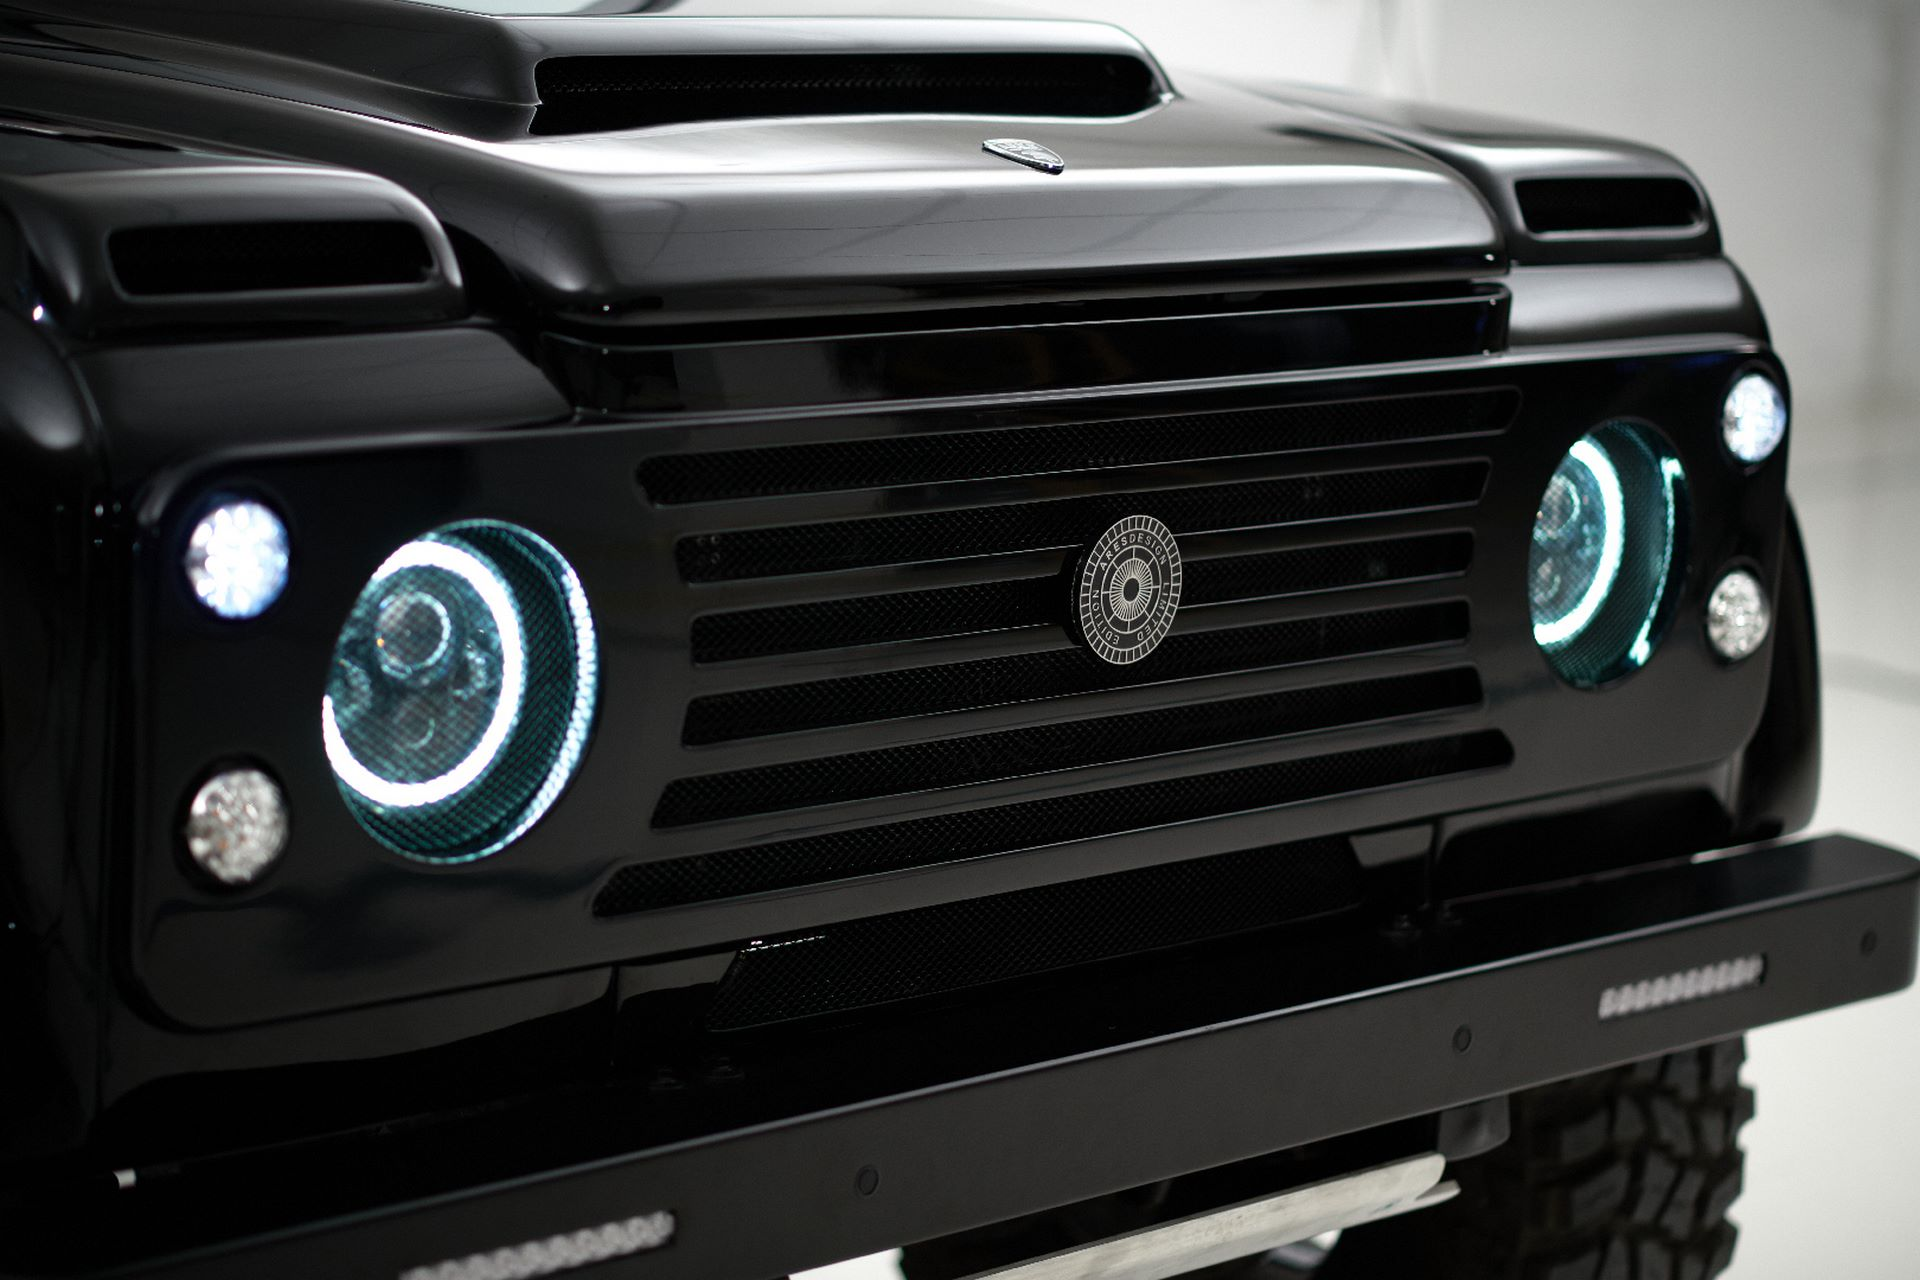 Porsche-911-964-Turbo-and-Land-Rover-Defender-by-Ares-Design-13